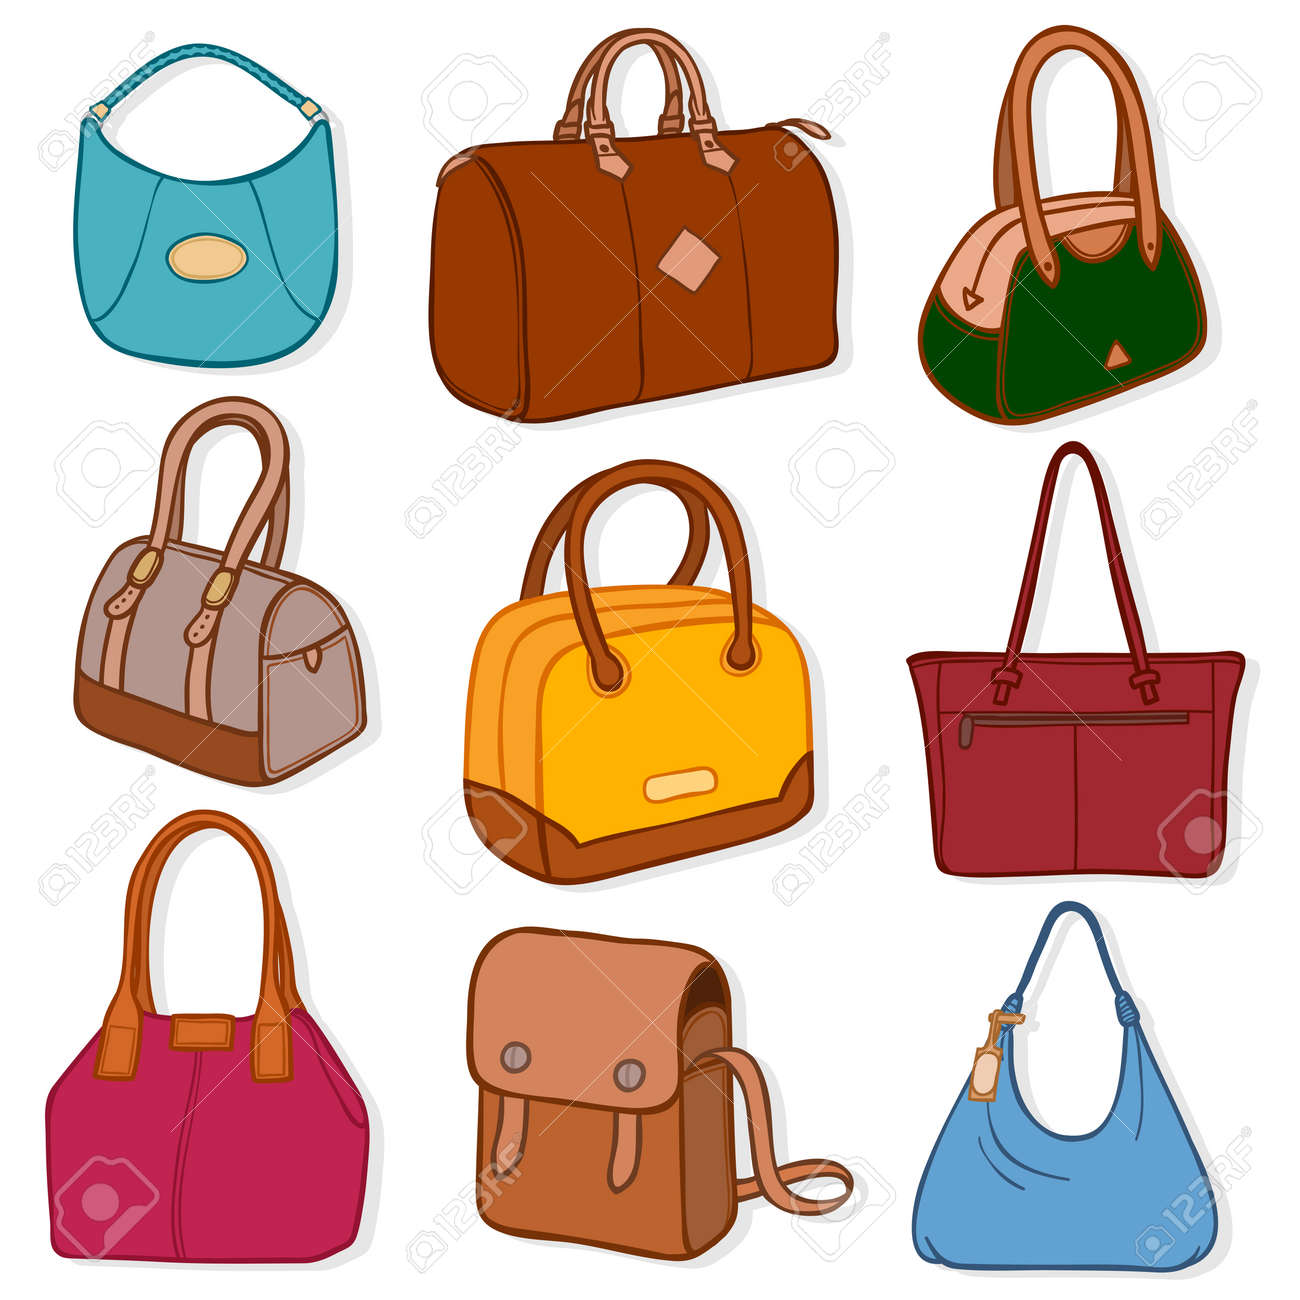 1a4117fb3057 Illustration of different kinds of latest fashion handbags and purses